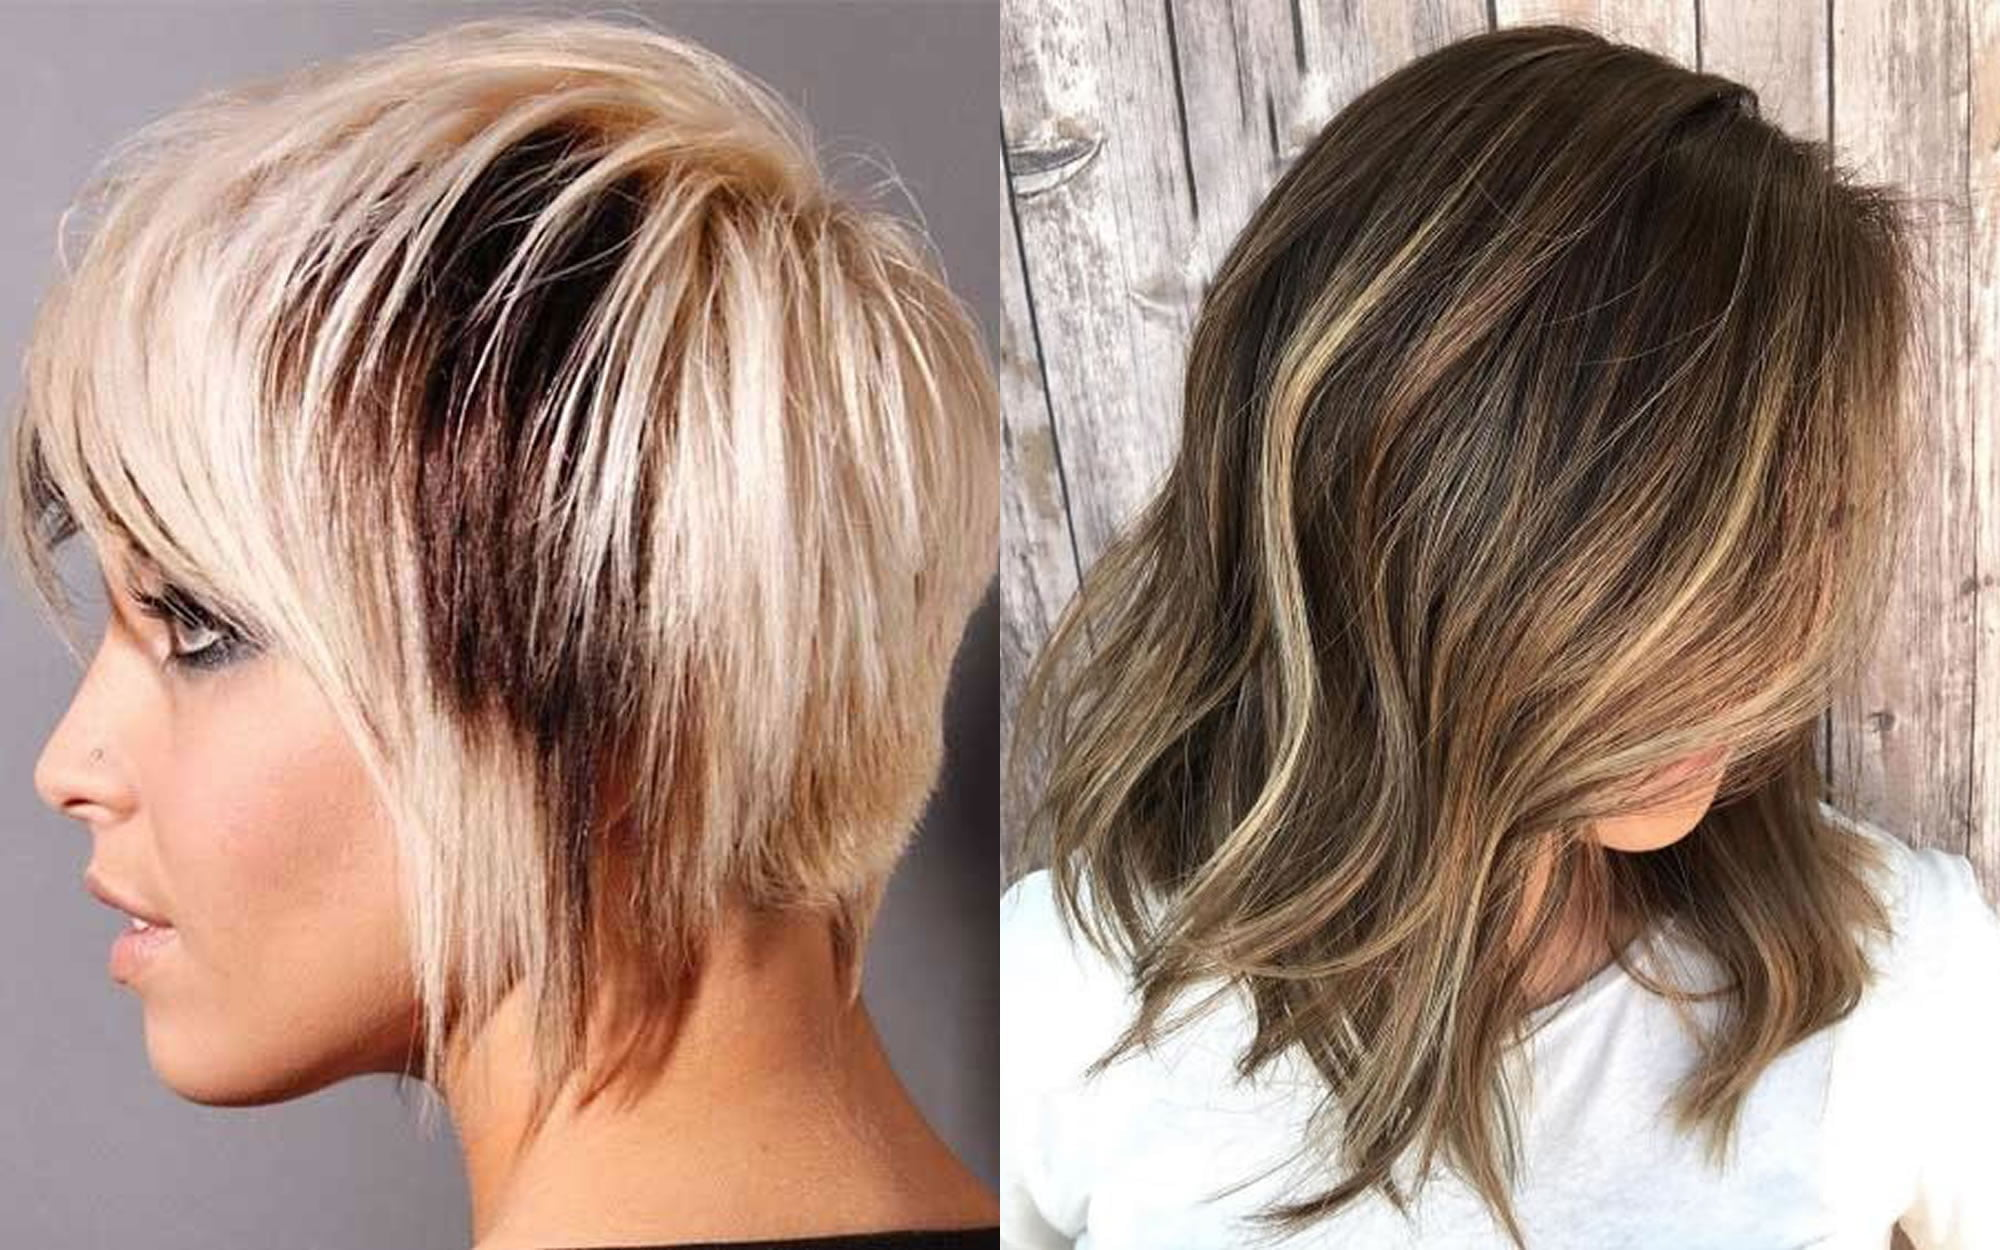 Ombre Hair Colors For Short Pixie Hair Balayage Hairstyles 2019